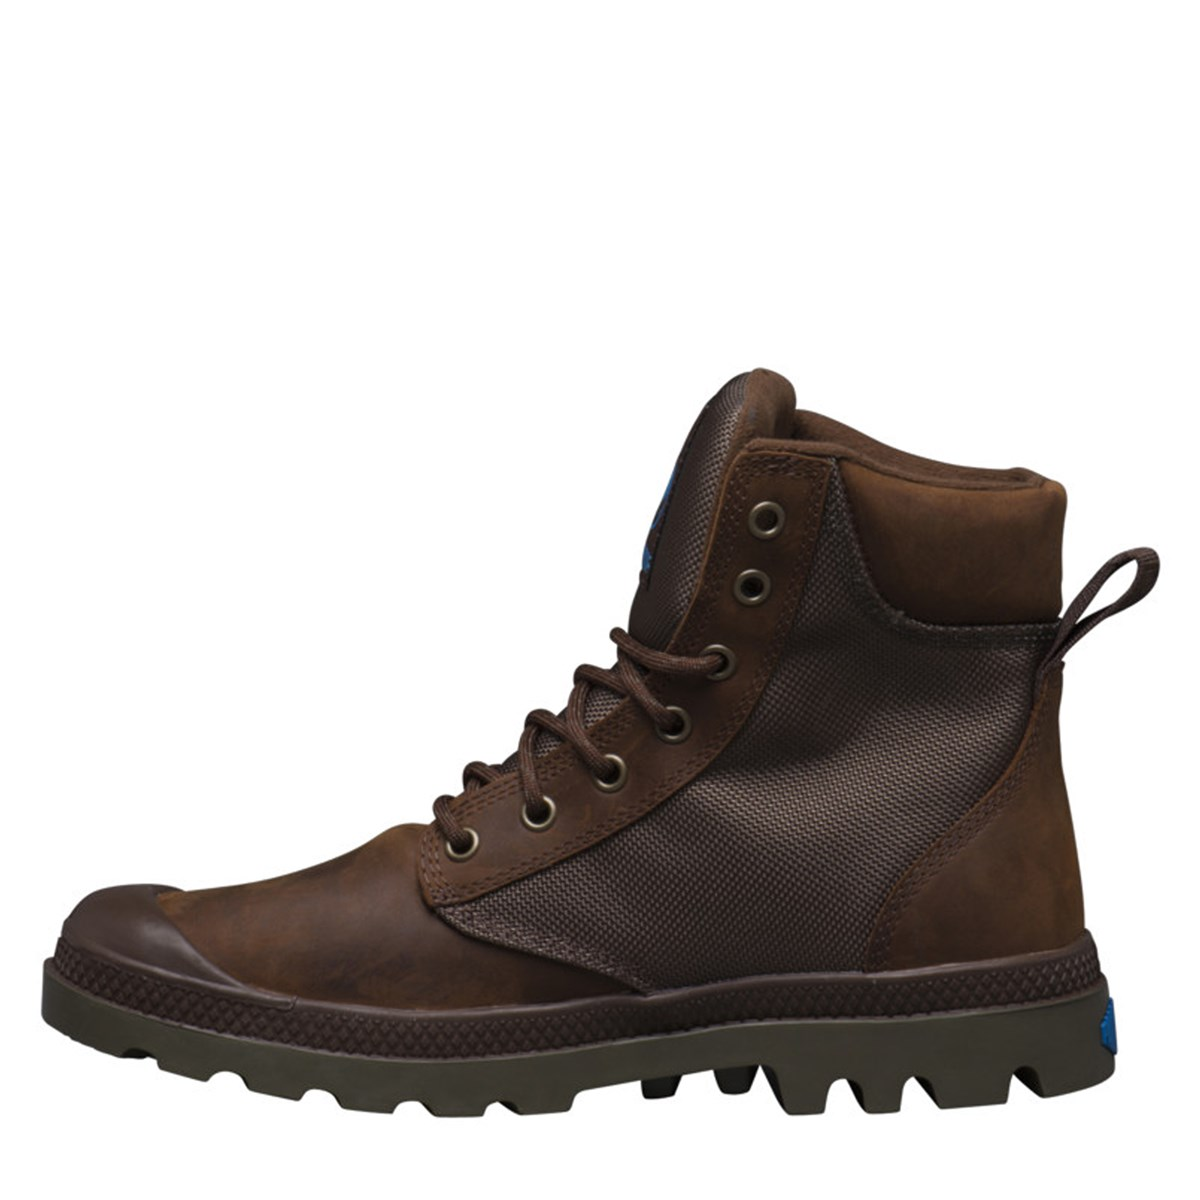 ad3a3a0f055 Pampa Sport Cuff WPN Boots in Brown